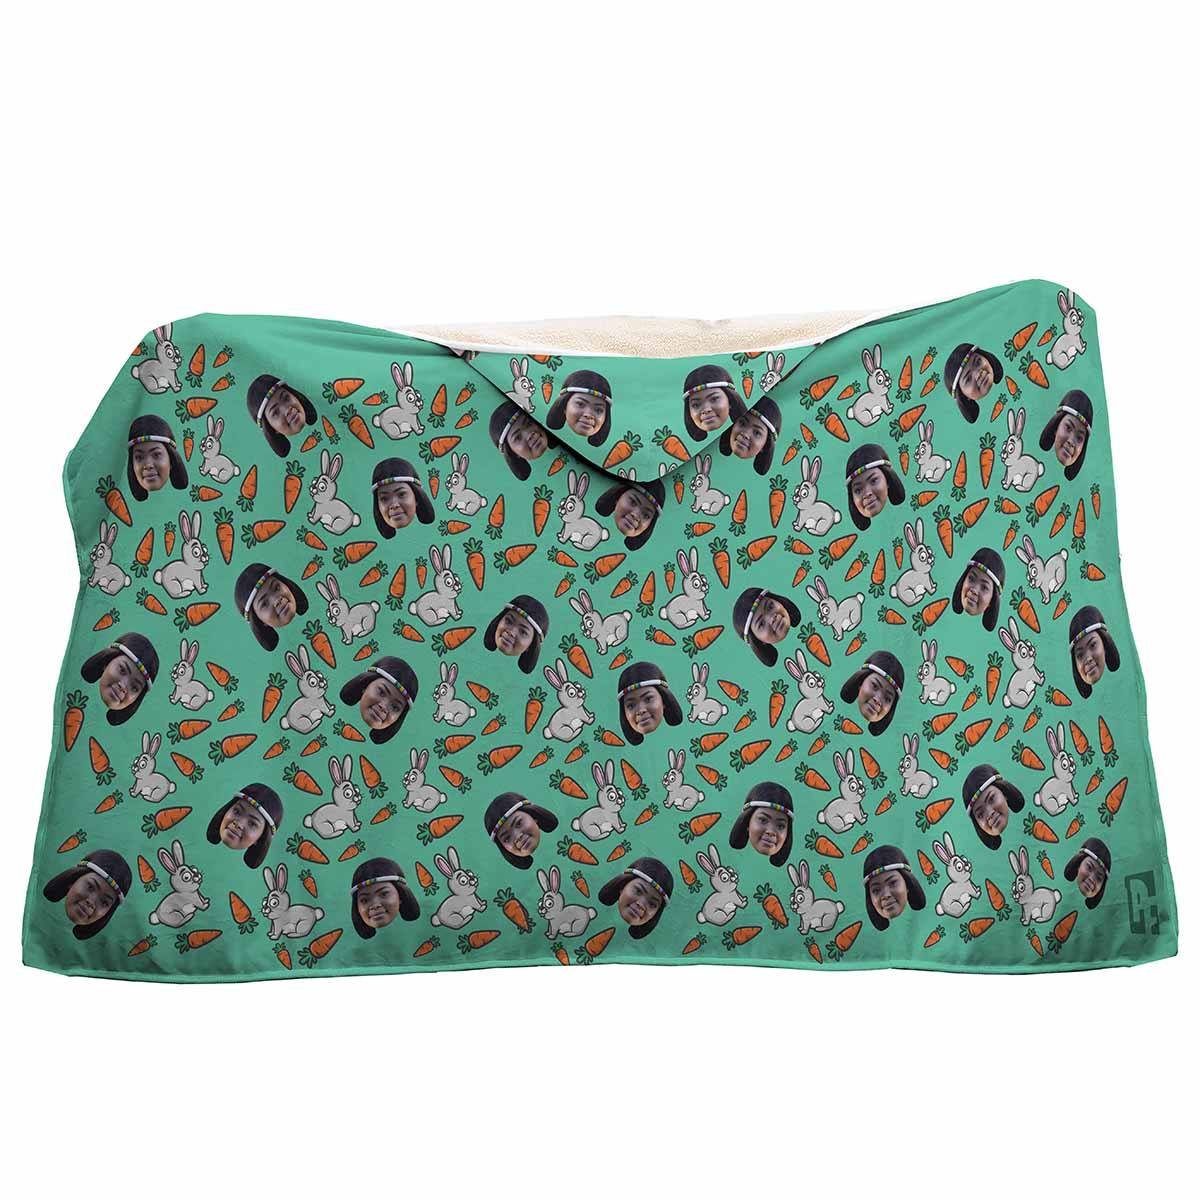 mint Bunny hooded blanket personalized with photo of face printed on it